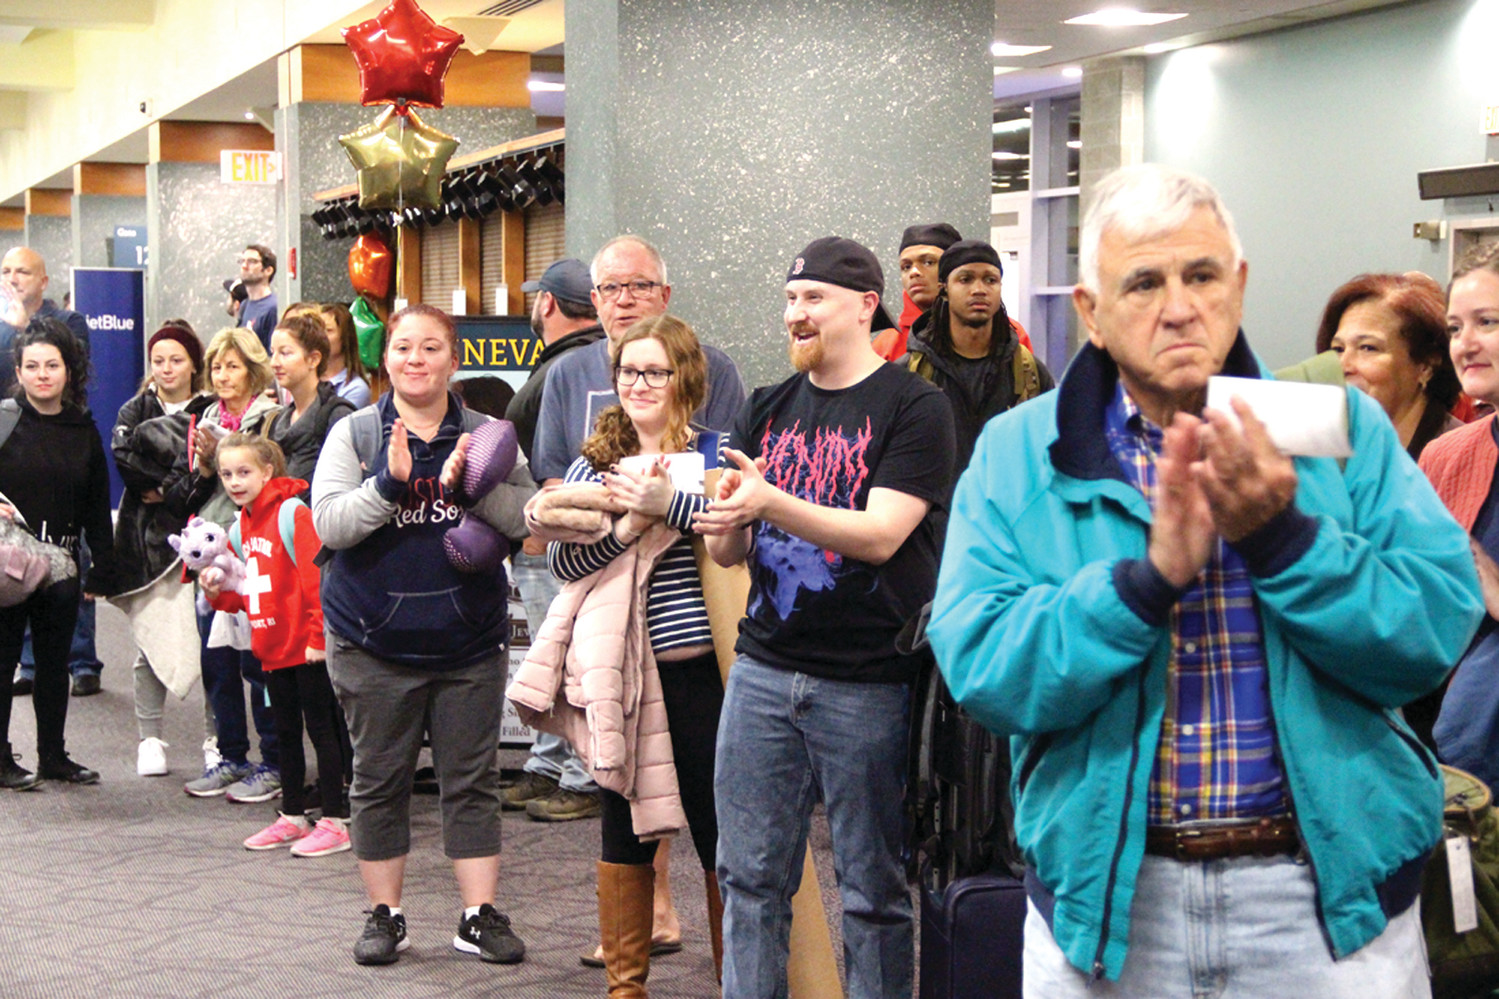 APPLAUDING TRAVELERS: Passengers waiting to board their flights lined up to cheer the veterans,